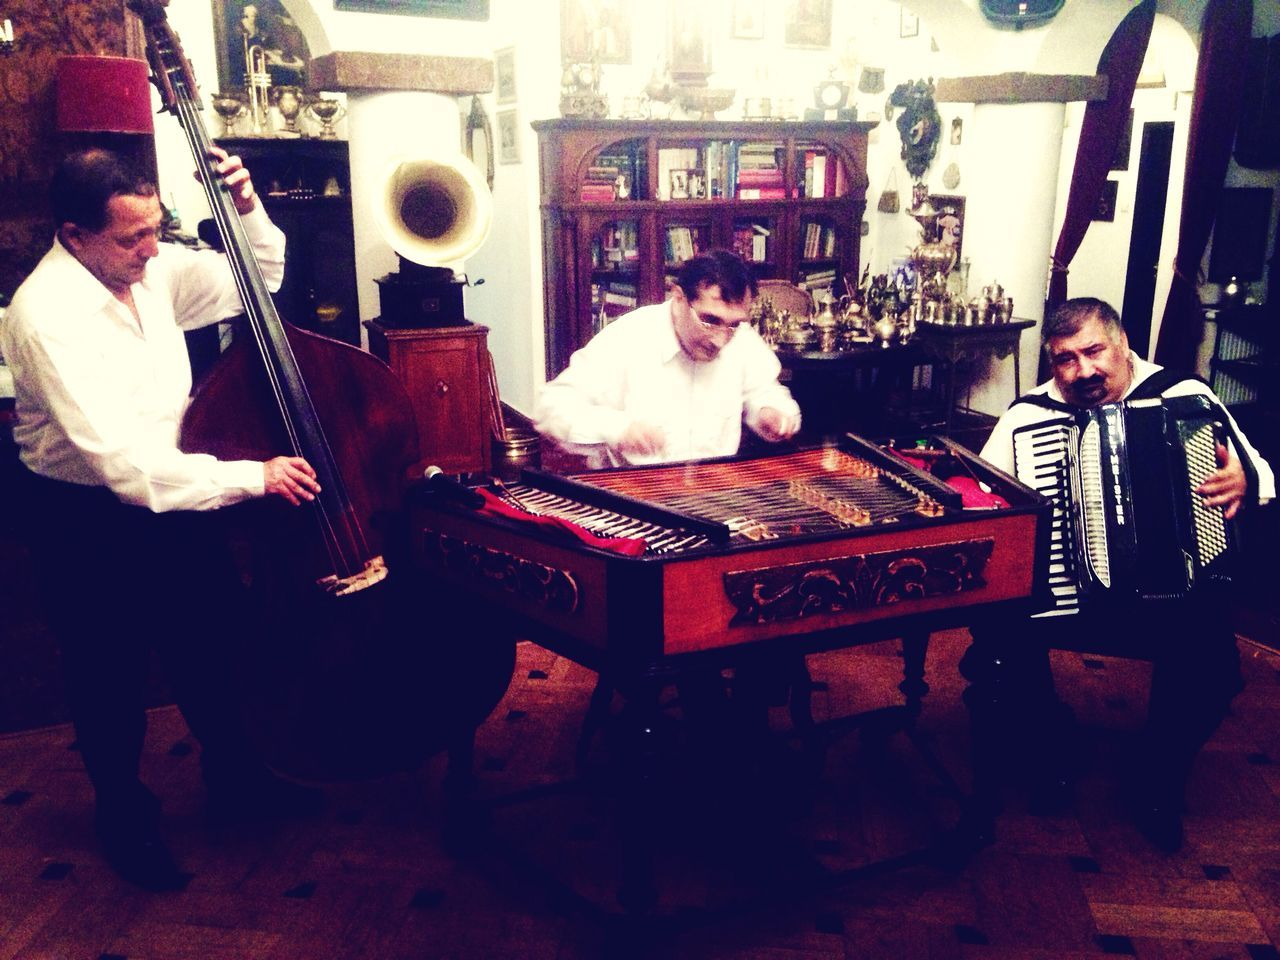 RePicture Team Hello World Enjoying Life Check This Out romanian classic music!